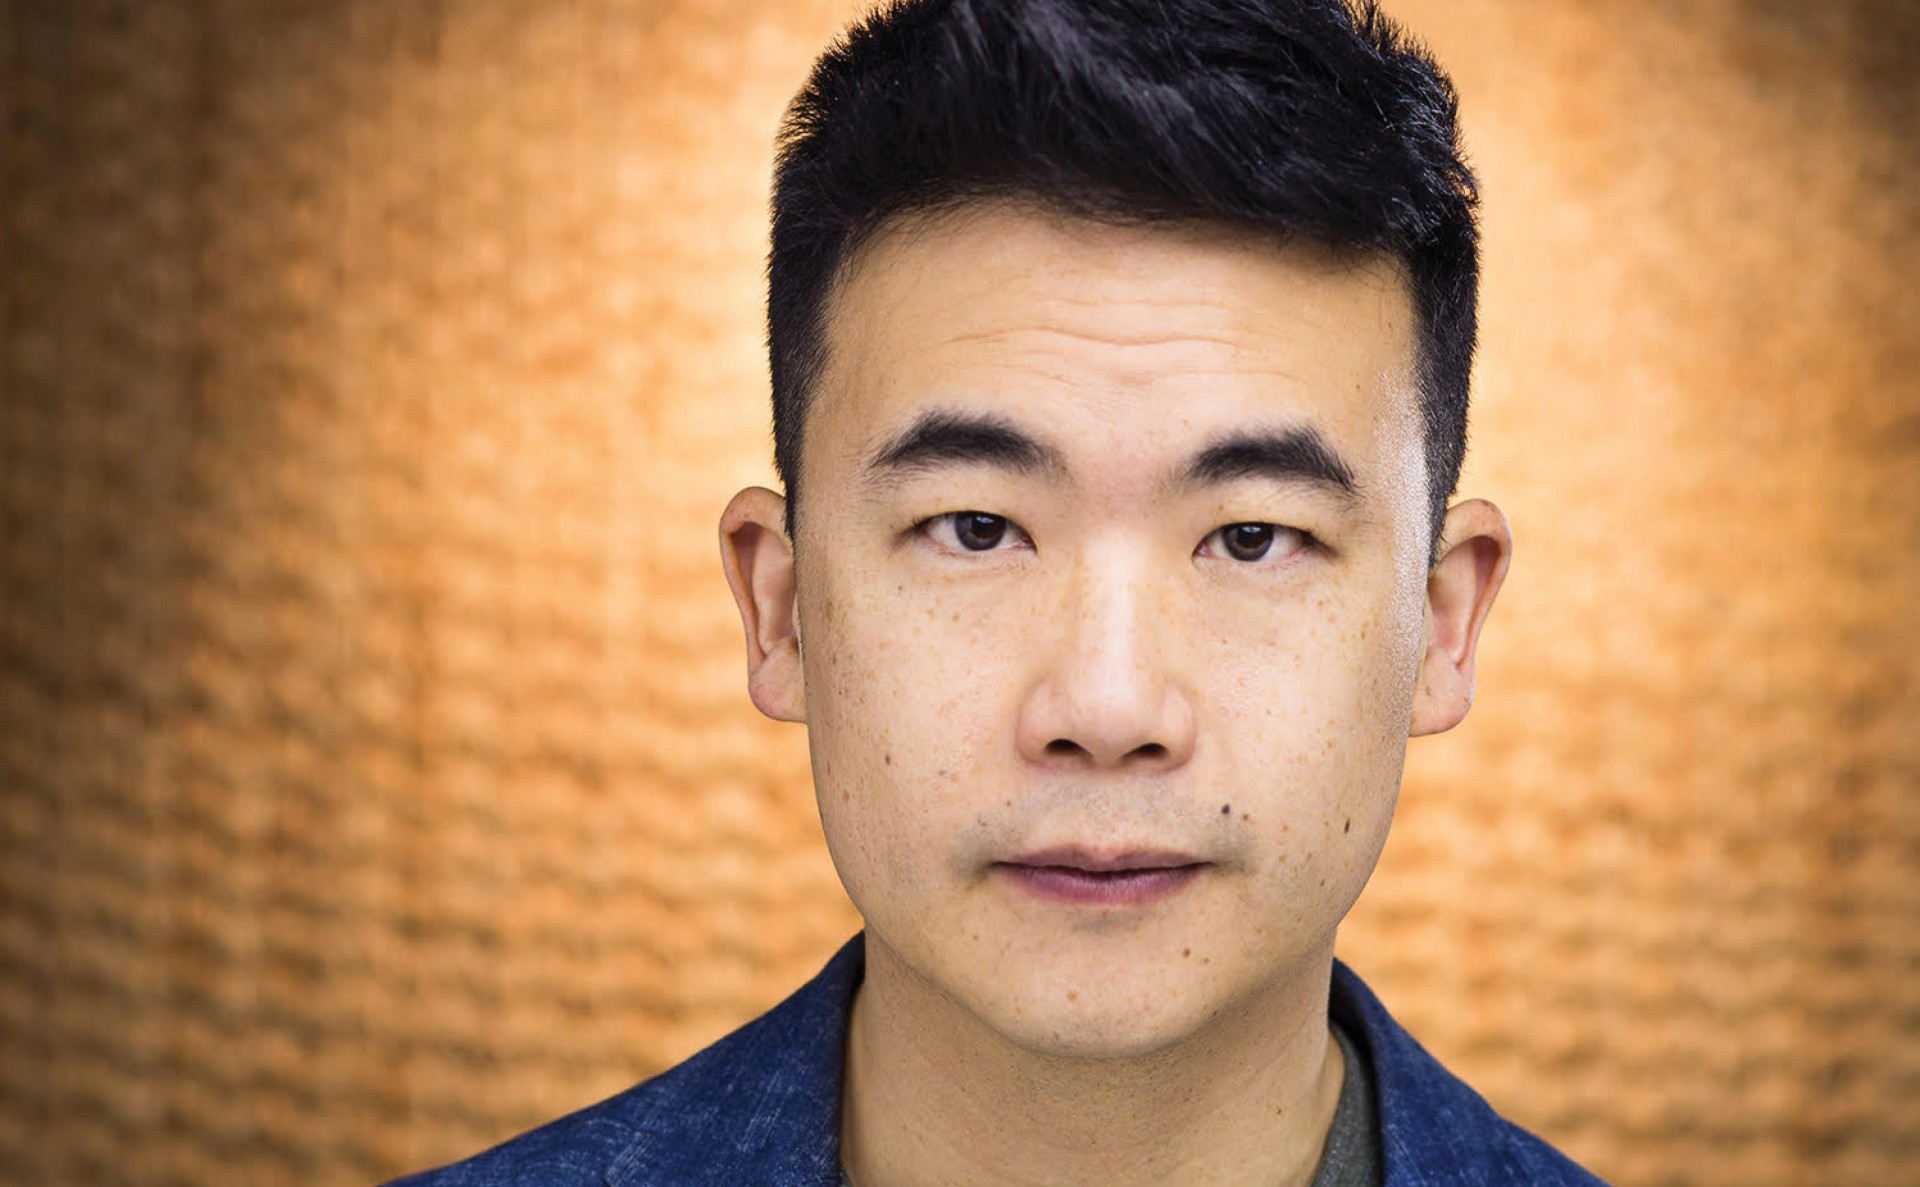 Simon Tam will be the featured speaker for an Arts and Lectures webinar on Oct. 28.